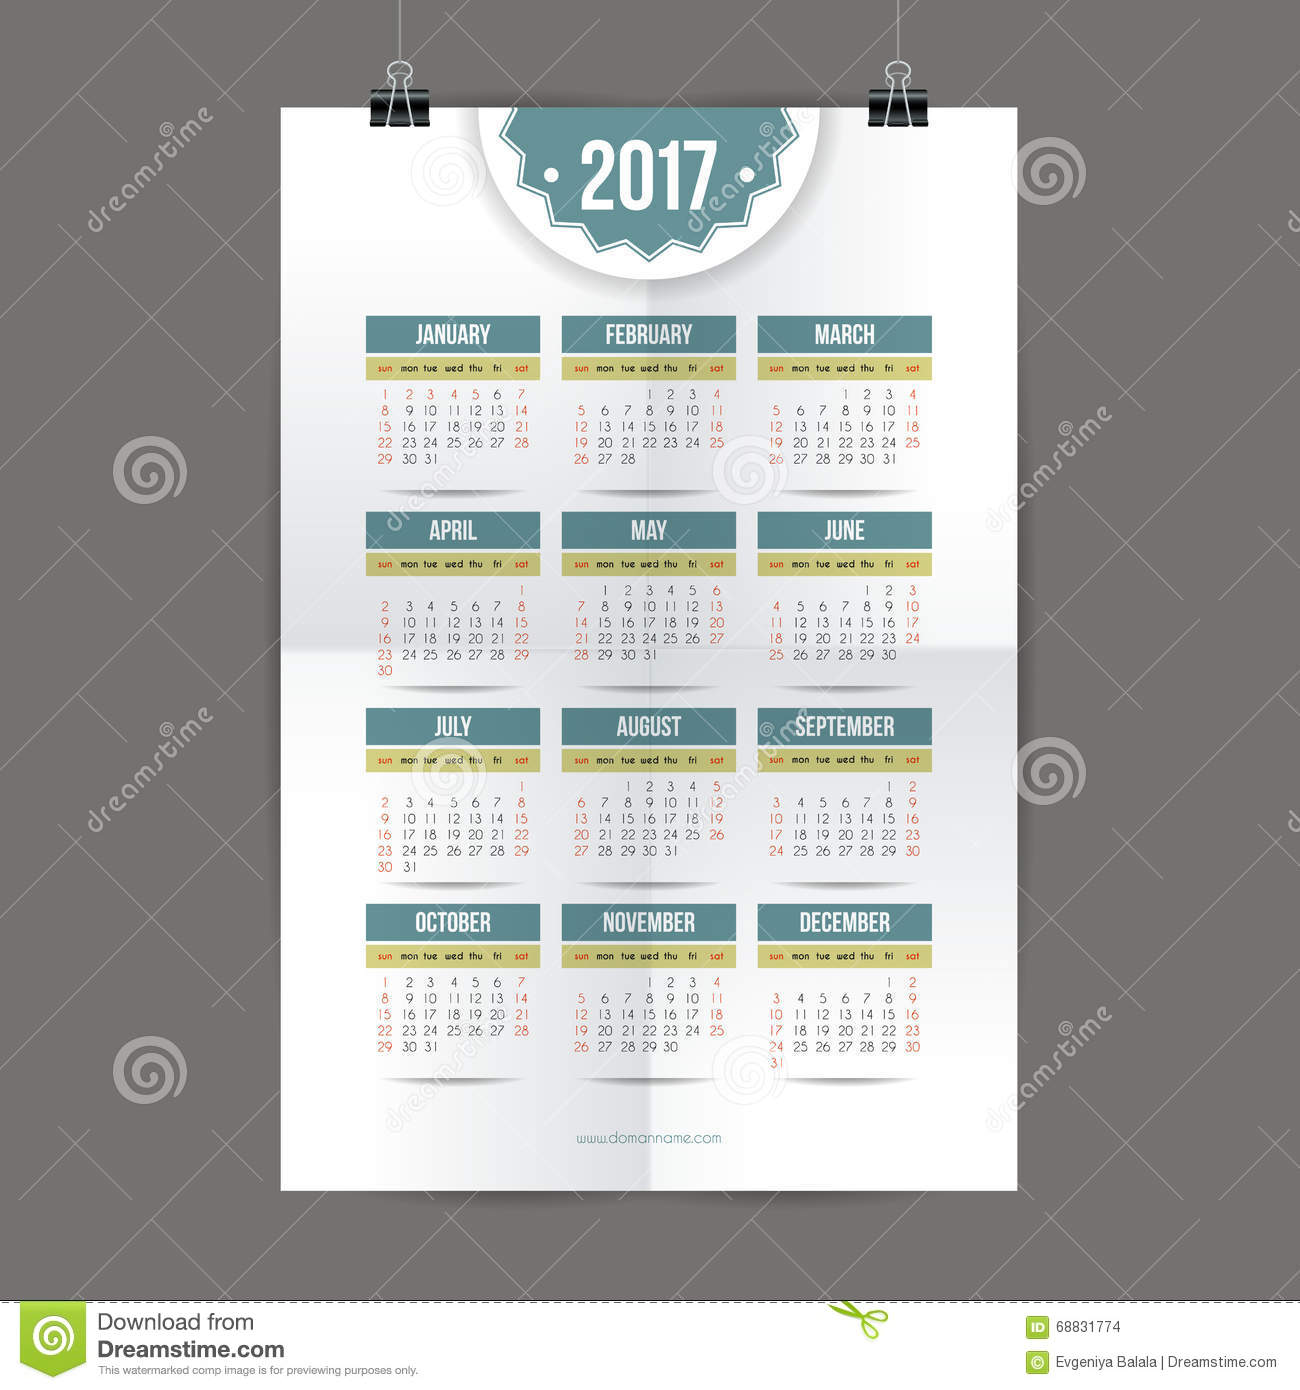 Design For Calendar 2017. English Or American System. Sunday Start. Stock Vector